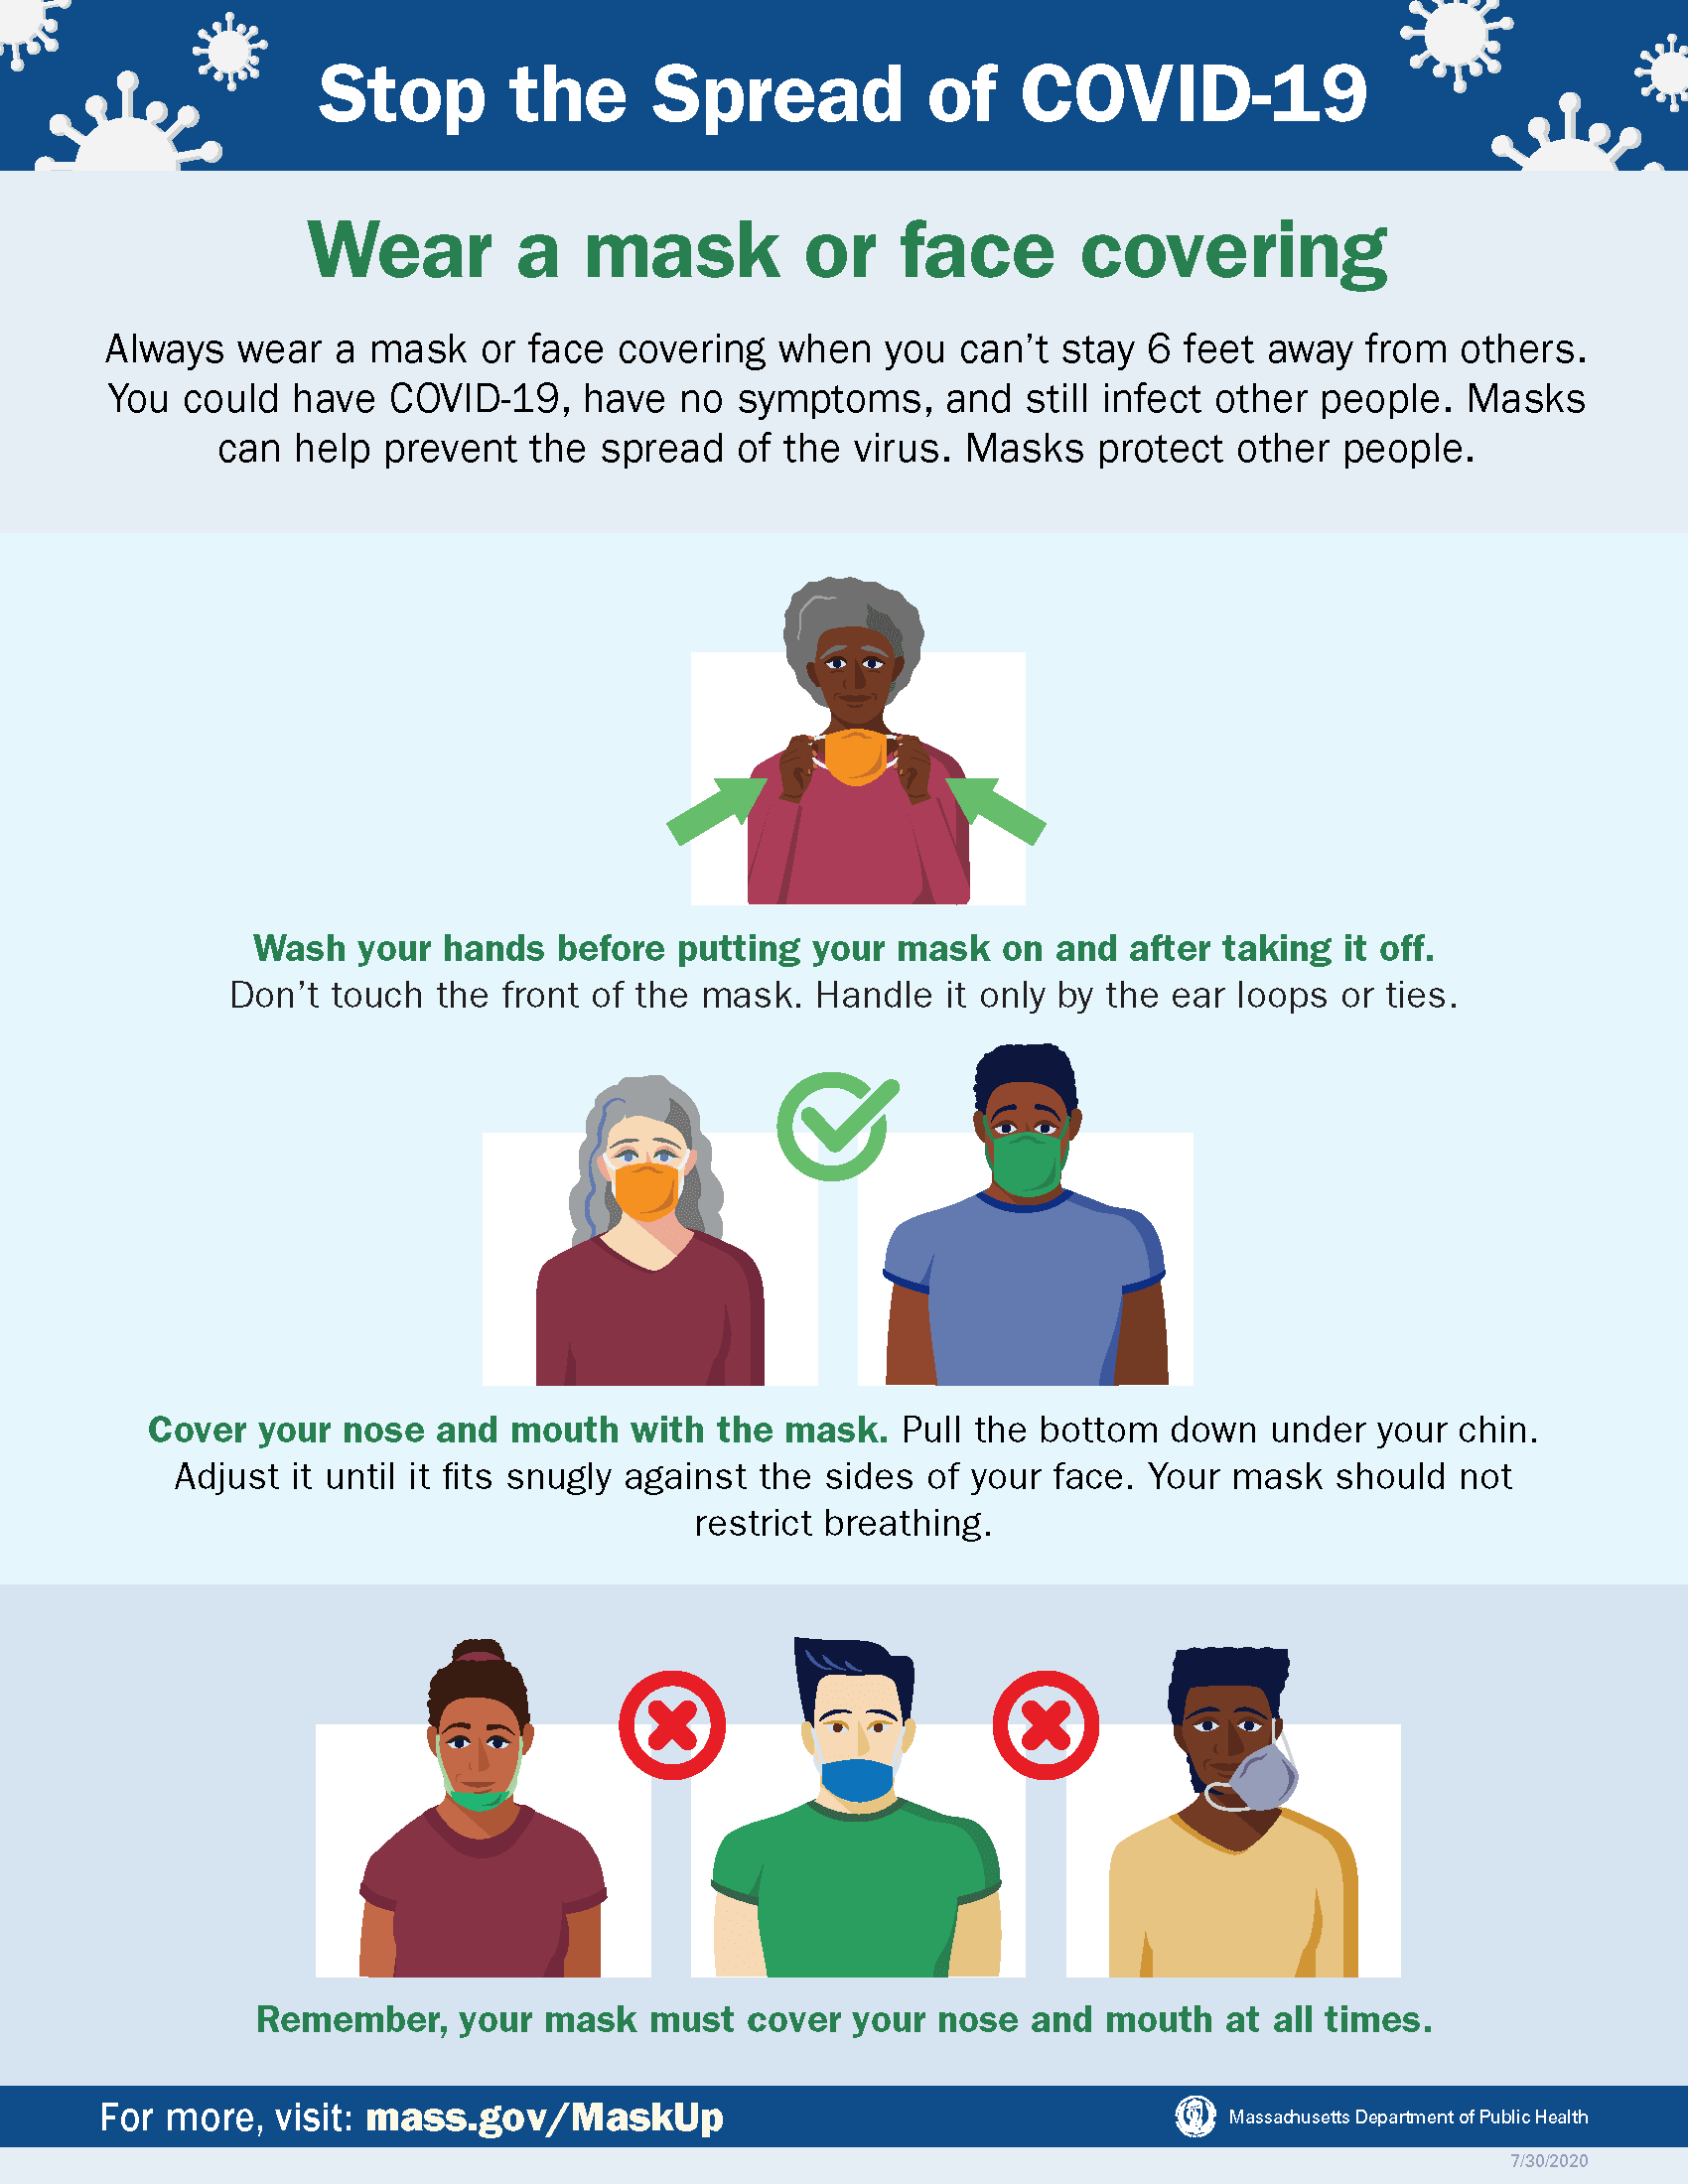 https://www.framinghamma.gov/DocumentCenter/View/39599/Mask-Up-infographic-English